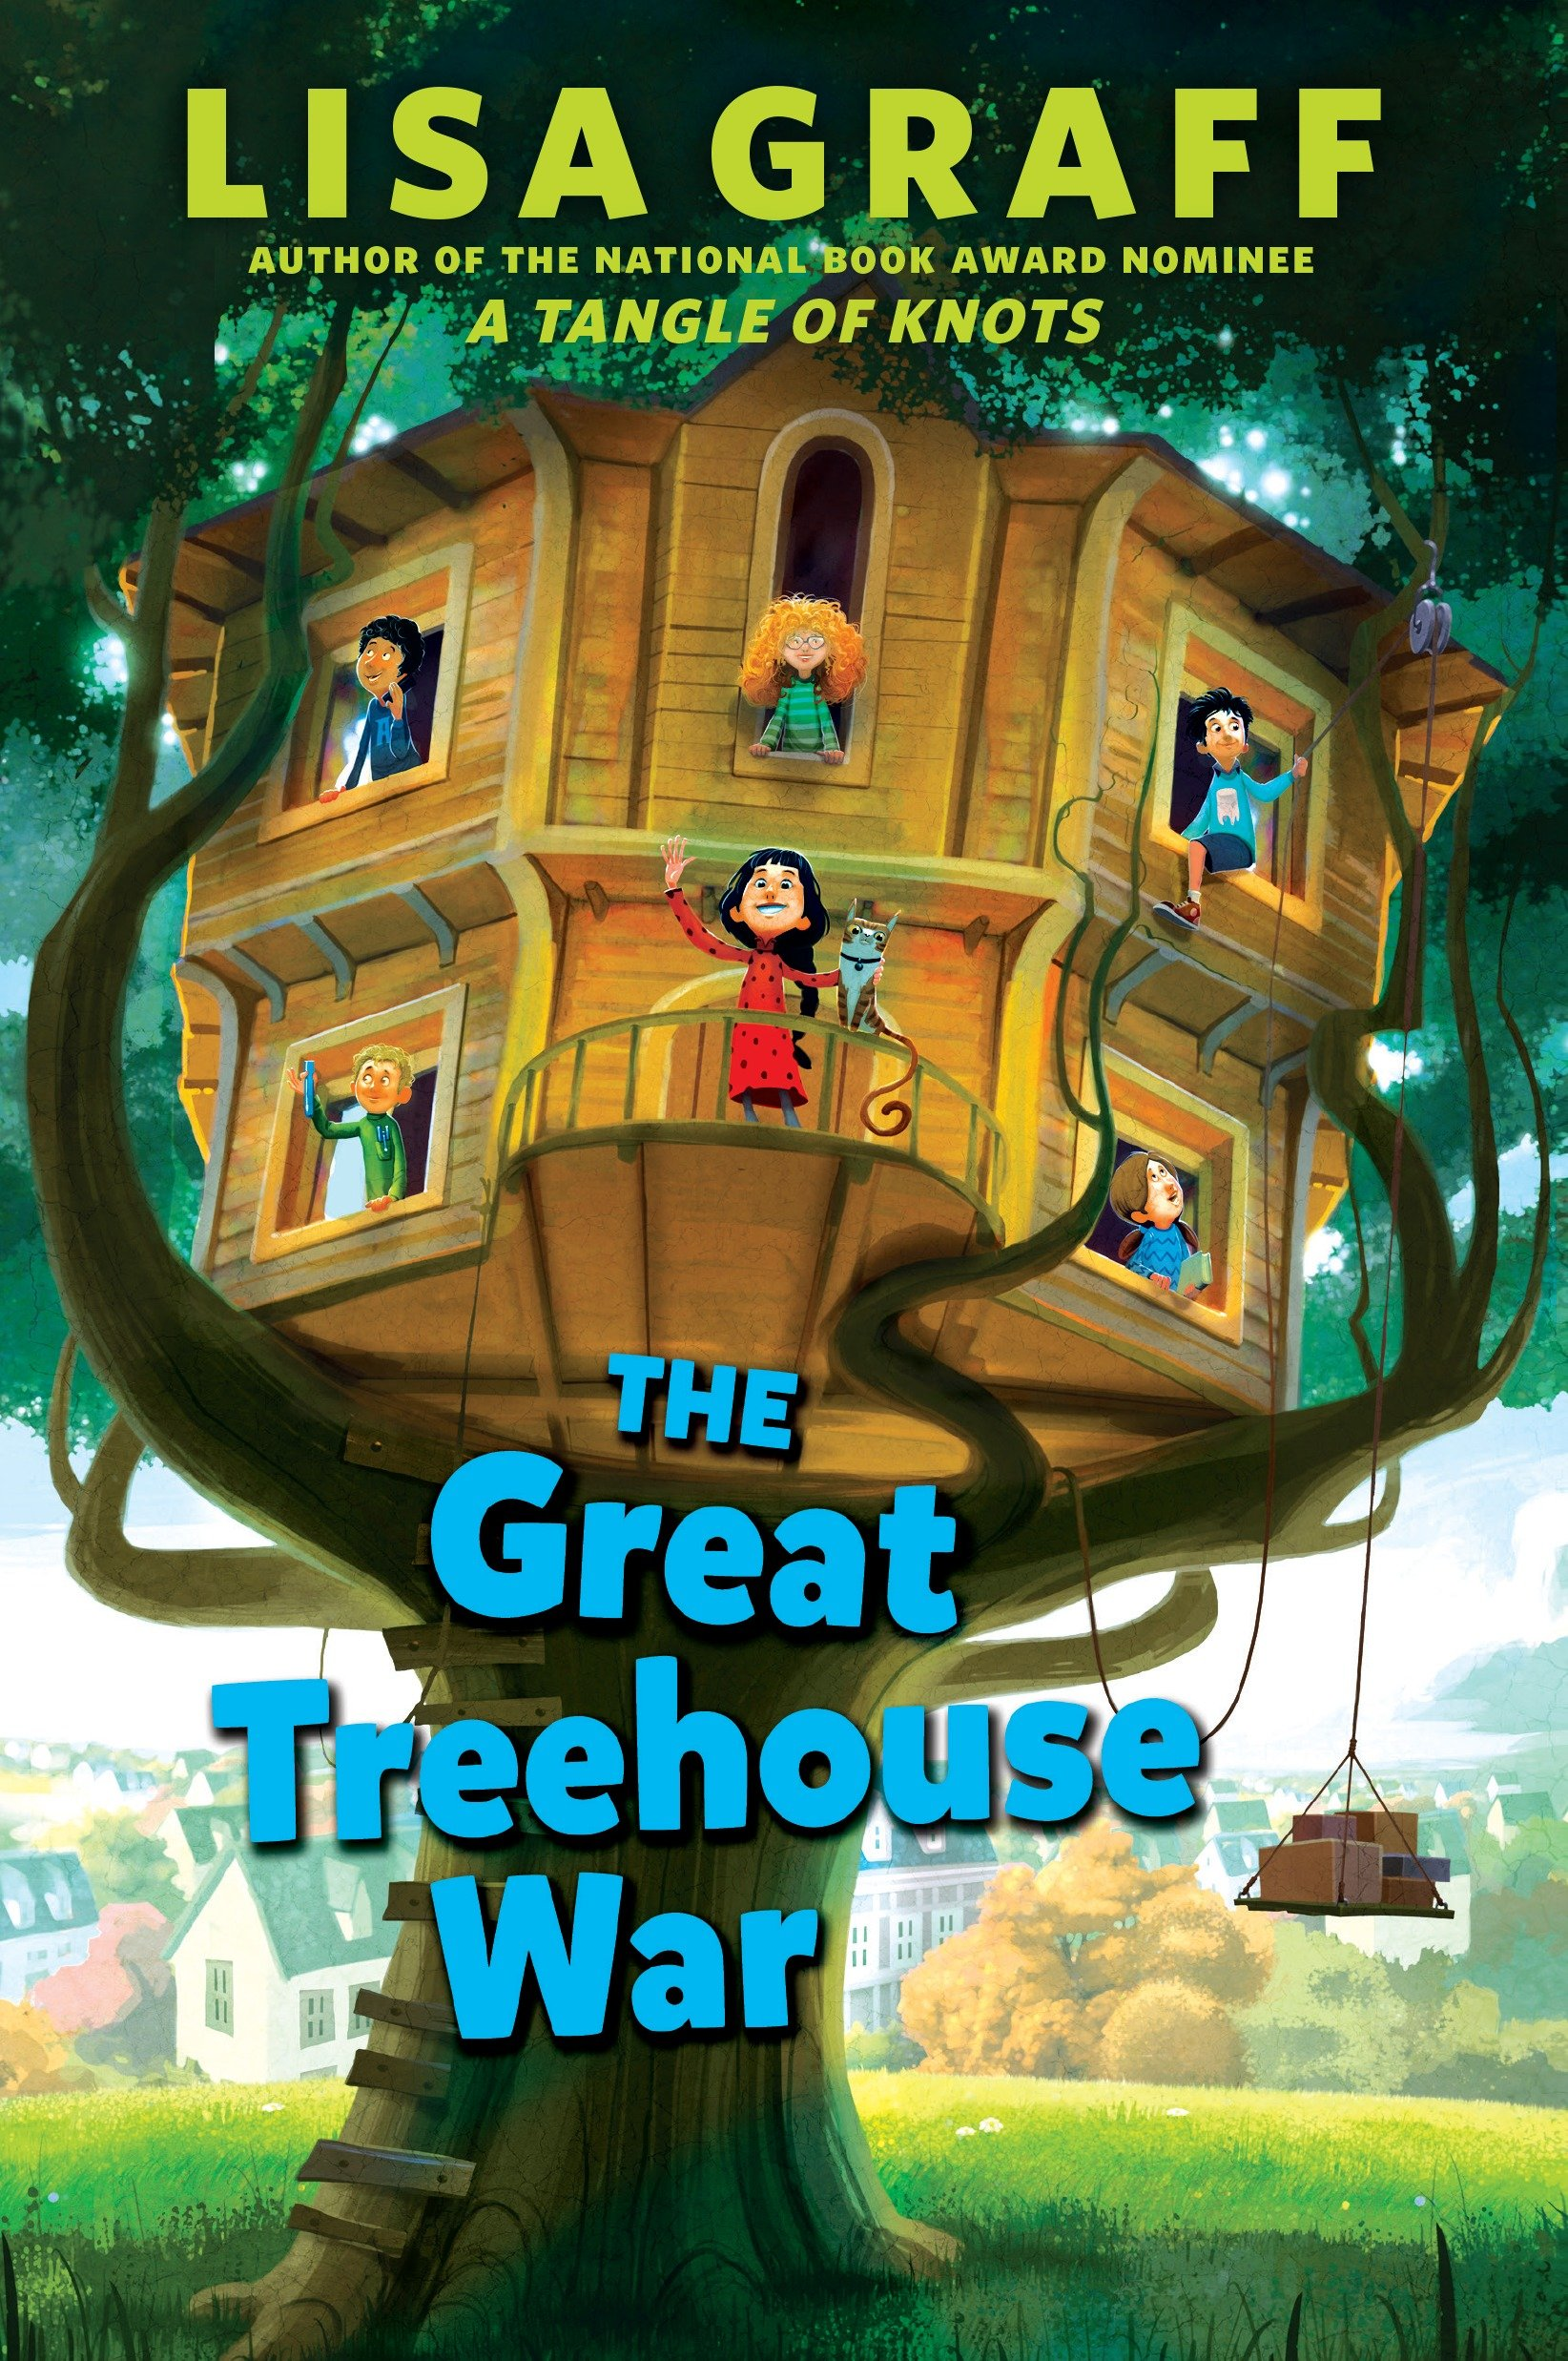 The great treehouse war cover image